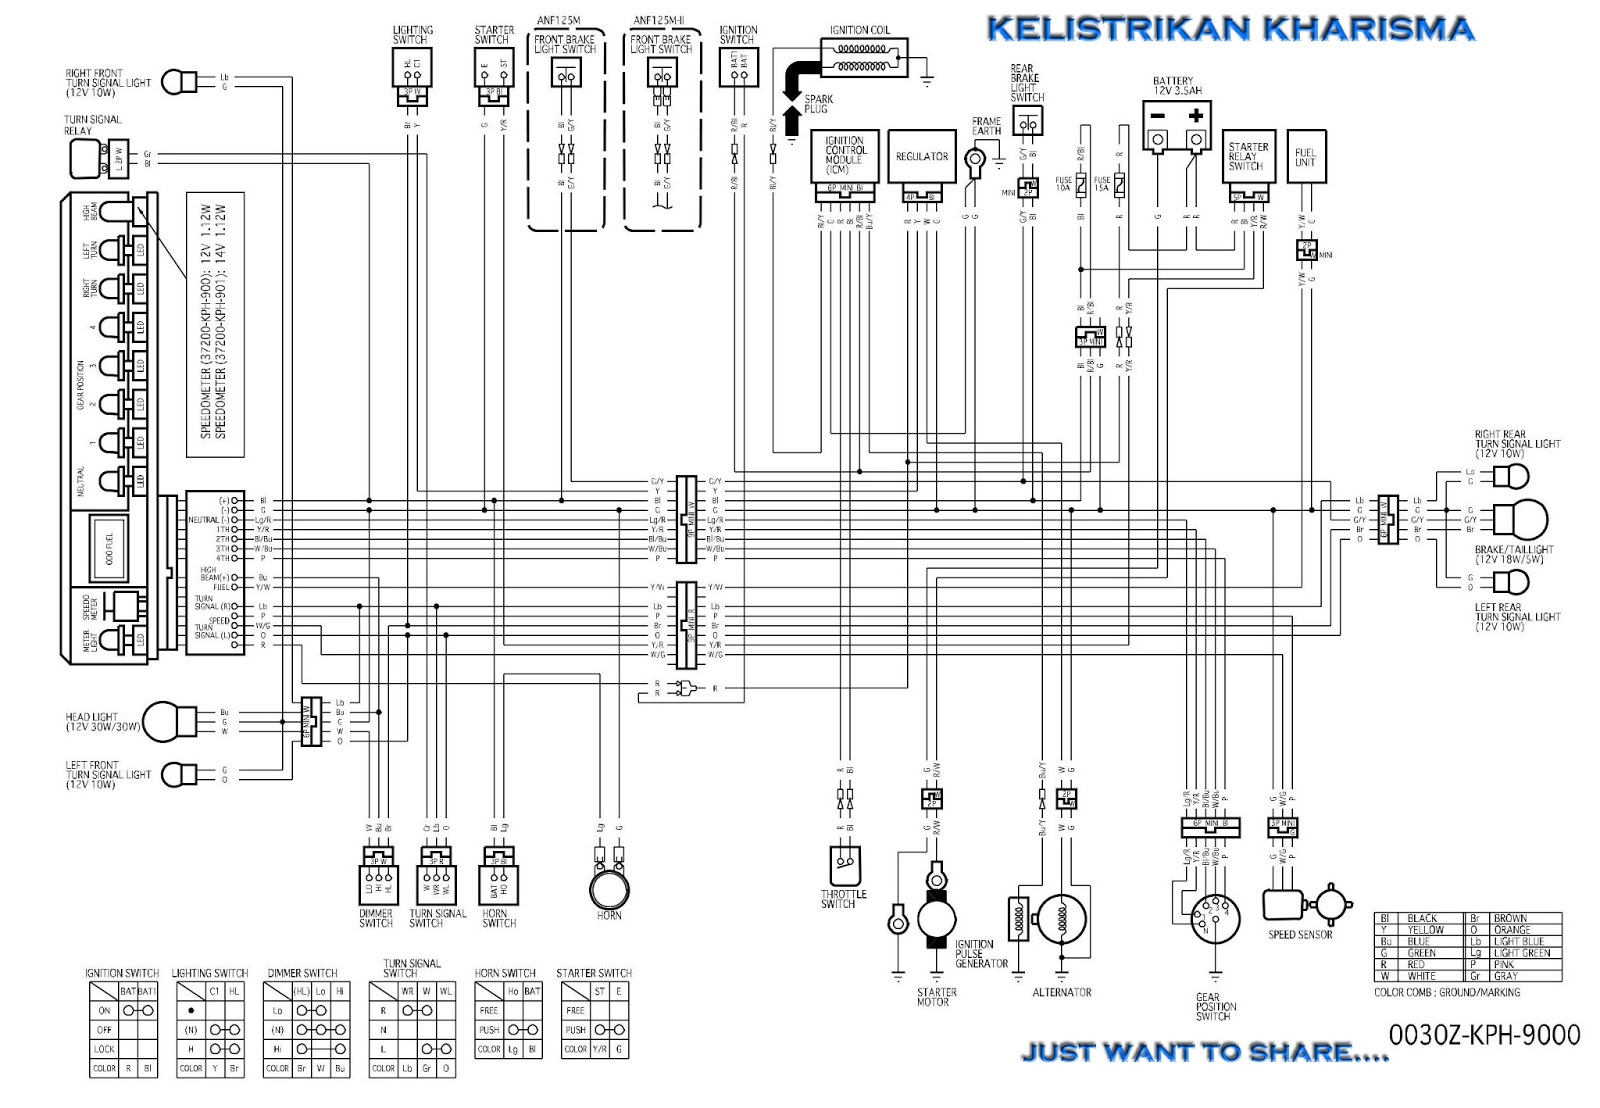 hight resolution of diagram kelistrikan honda kharisma bacabisa wiring diagram honda karisma pdf bagi yang lagi mencari diagram kelistrikan